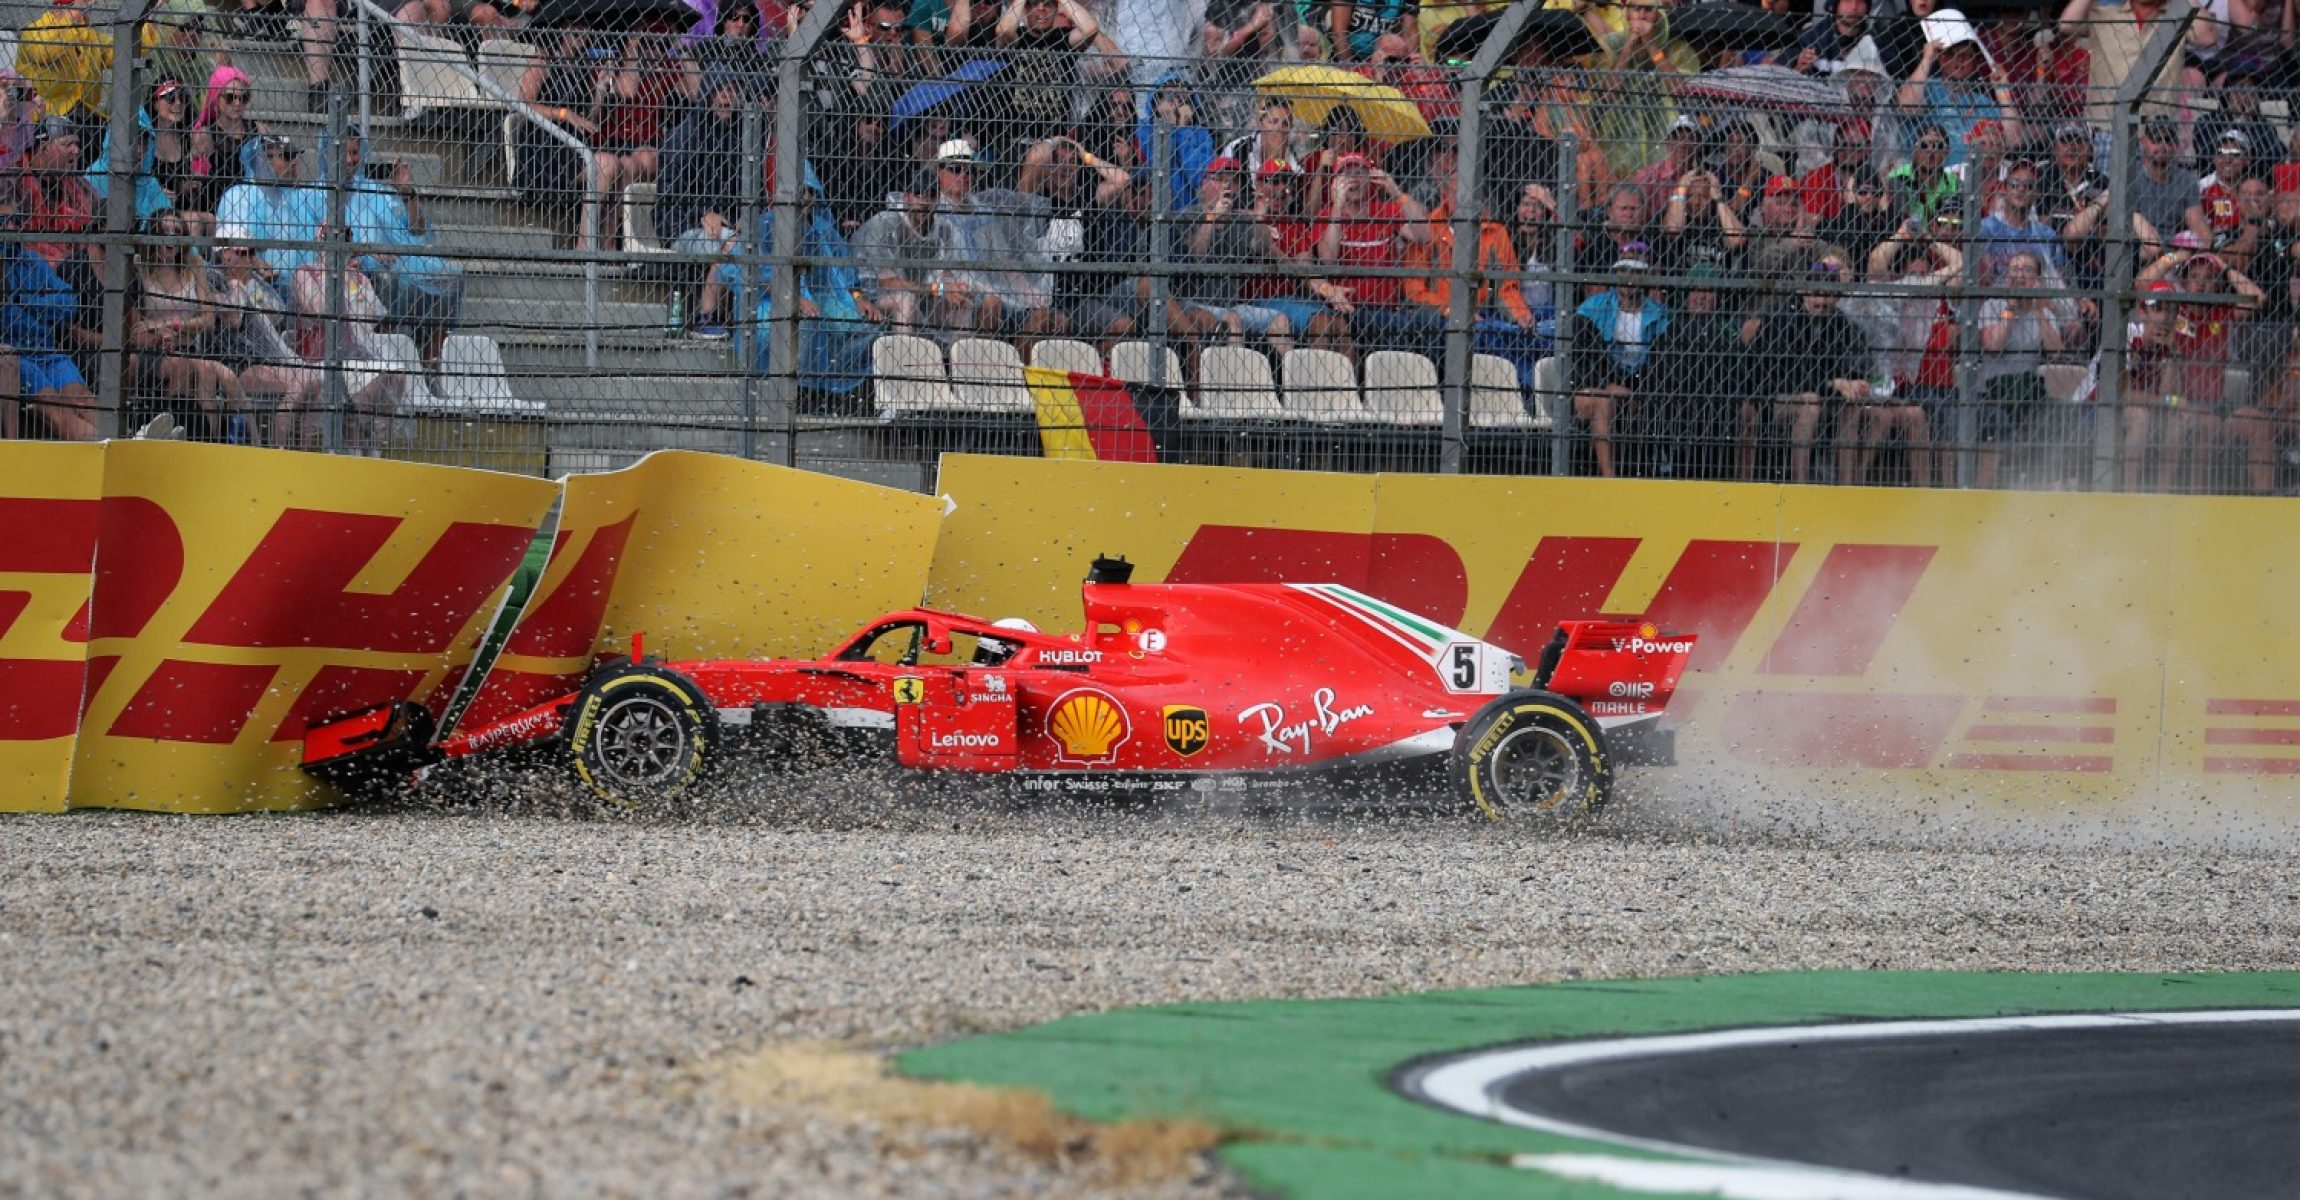 HOCKENHEIMRING, GERMANY - JULY 22: Sebastian Vettel (GER) Ferrari SF-71H crashes out of the race during the German GP at Hockenheimring on July 22, 2018 in Hockenheimring, Germany. (Photo by Hasan Bratic / Sutton Images)